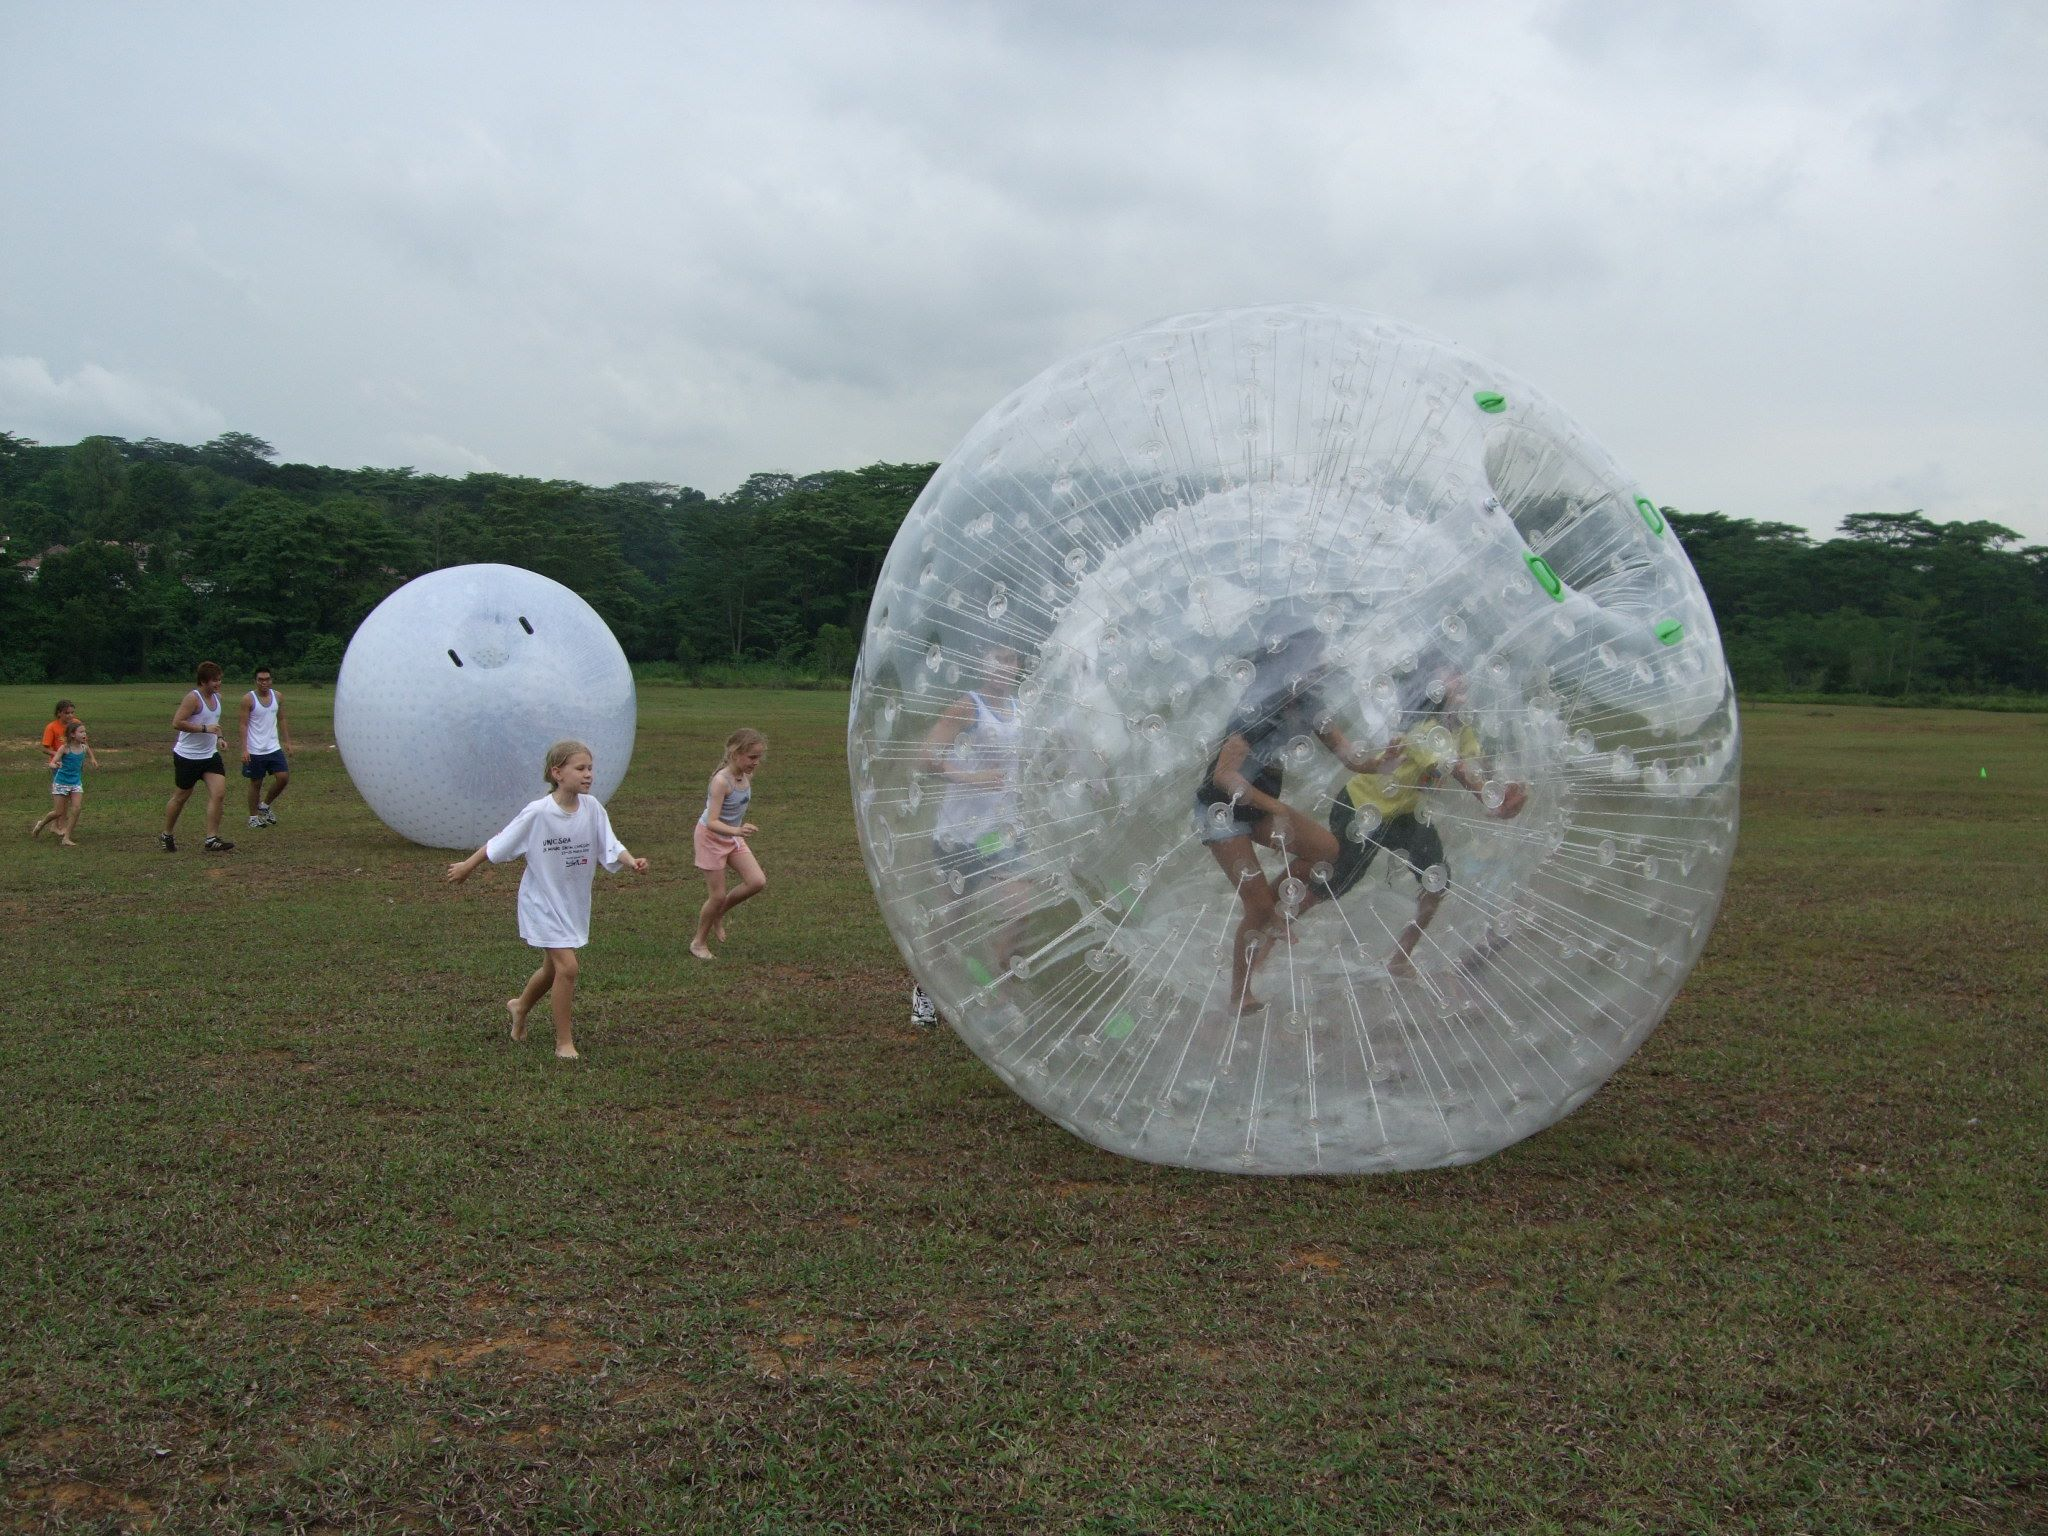 Bubble ball 'Land ZOVB' roll downs at Old Holland Road